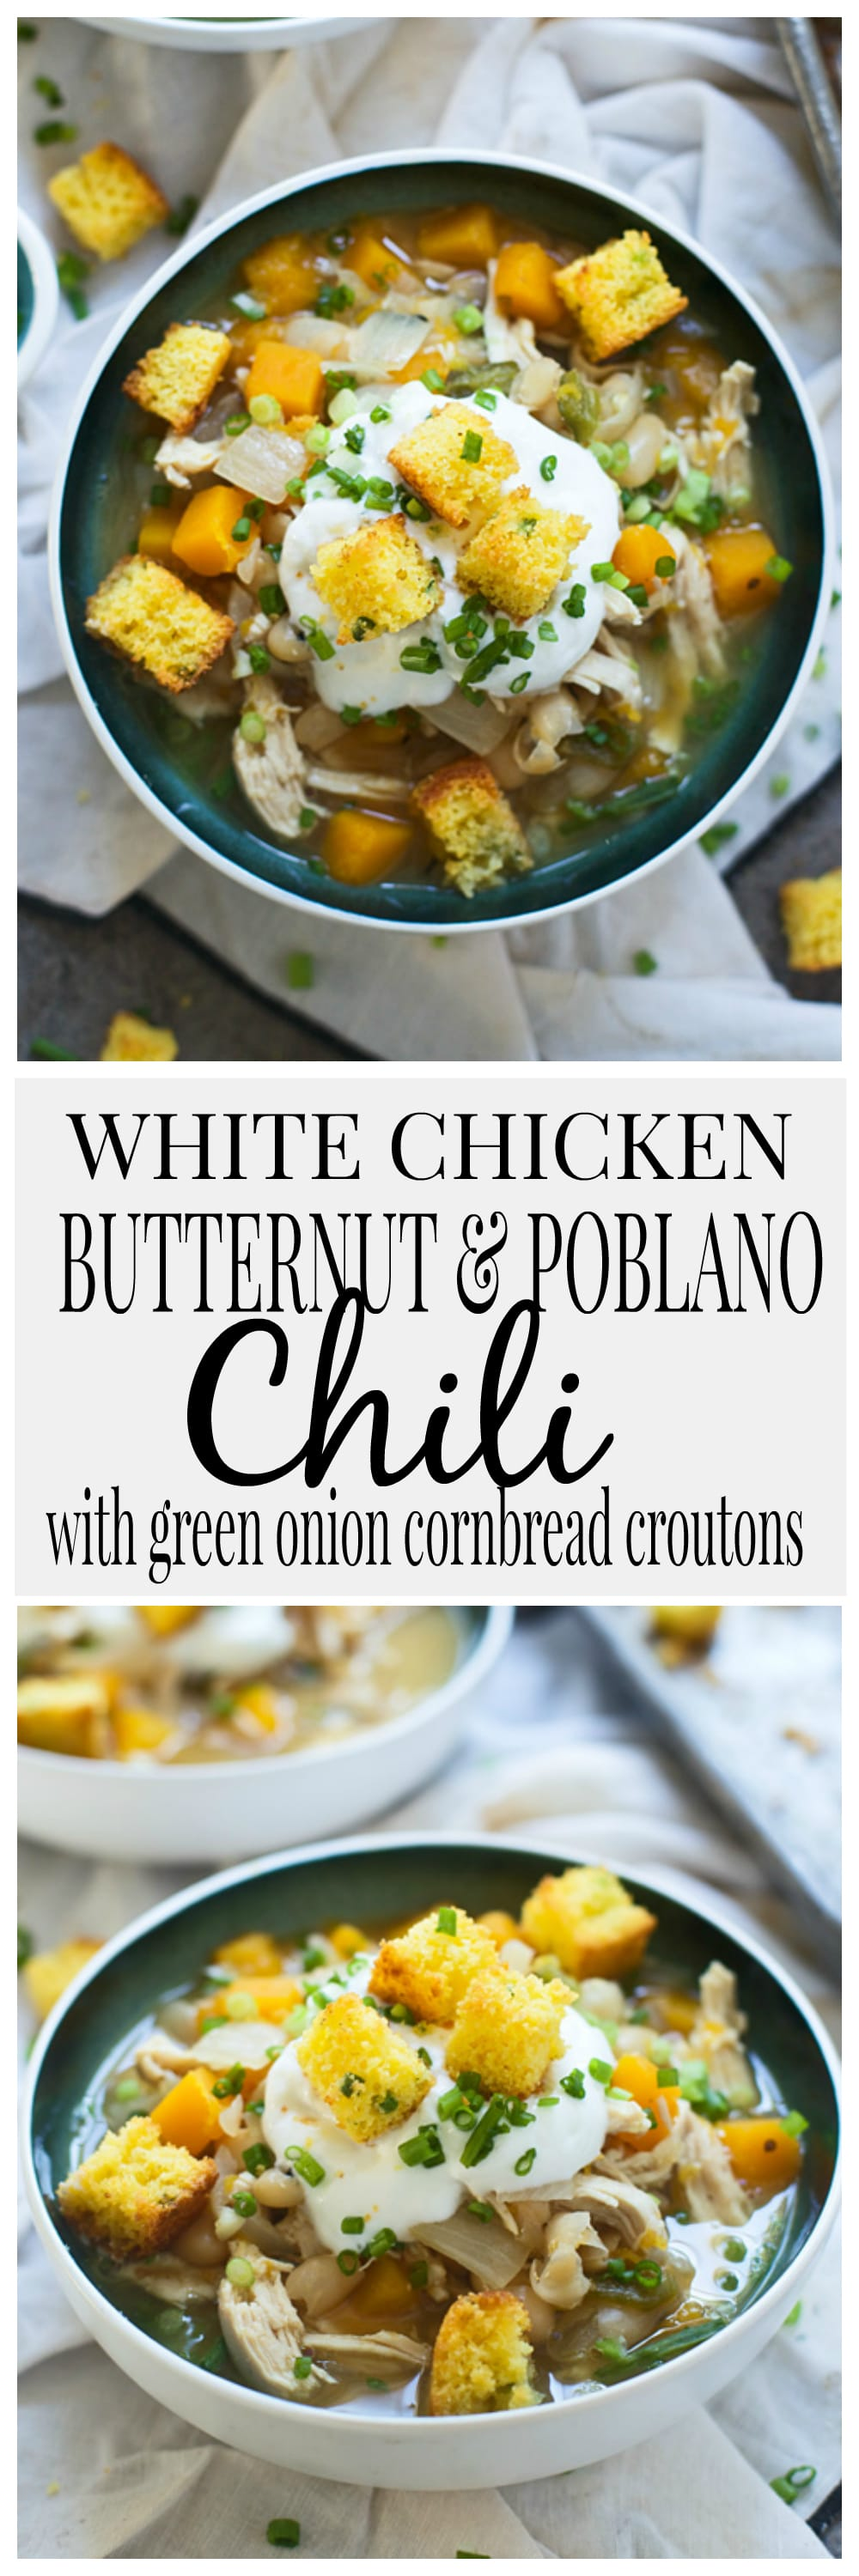 White Chicken Butternut and Poblano Chili with Cornbread Croutons